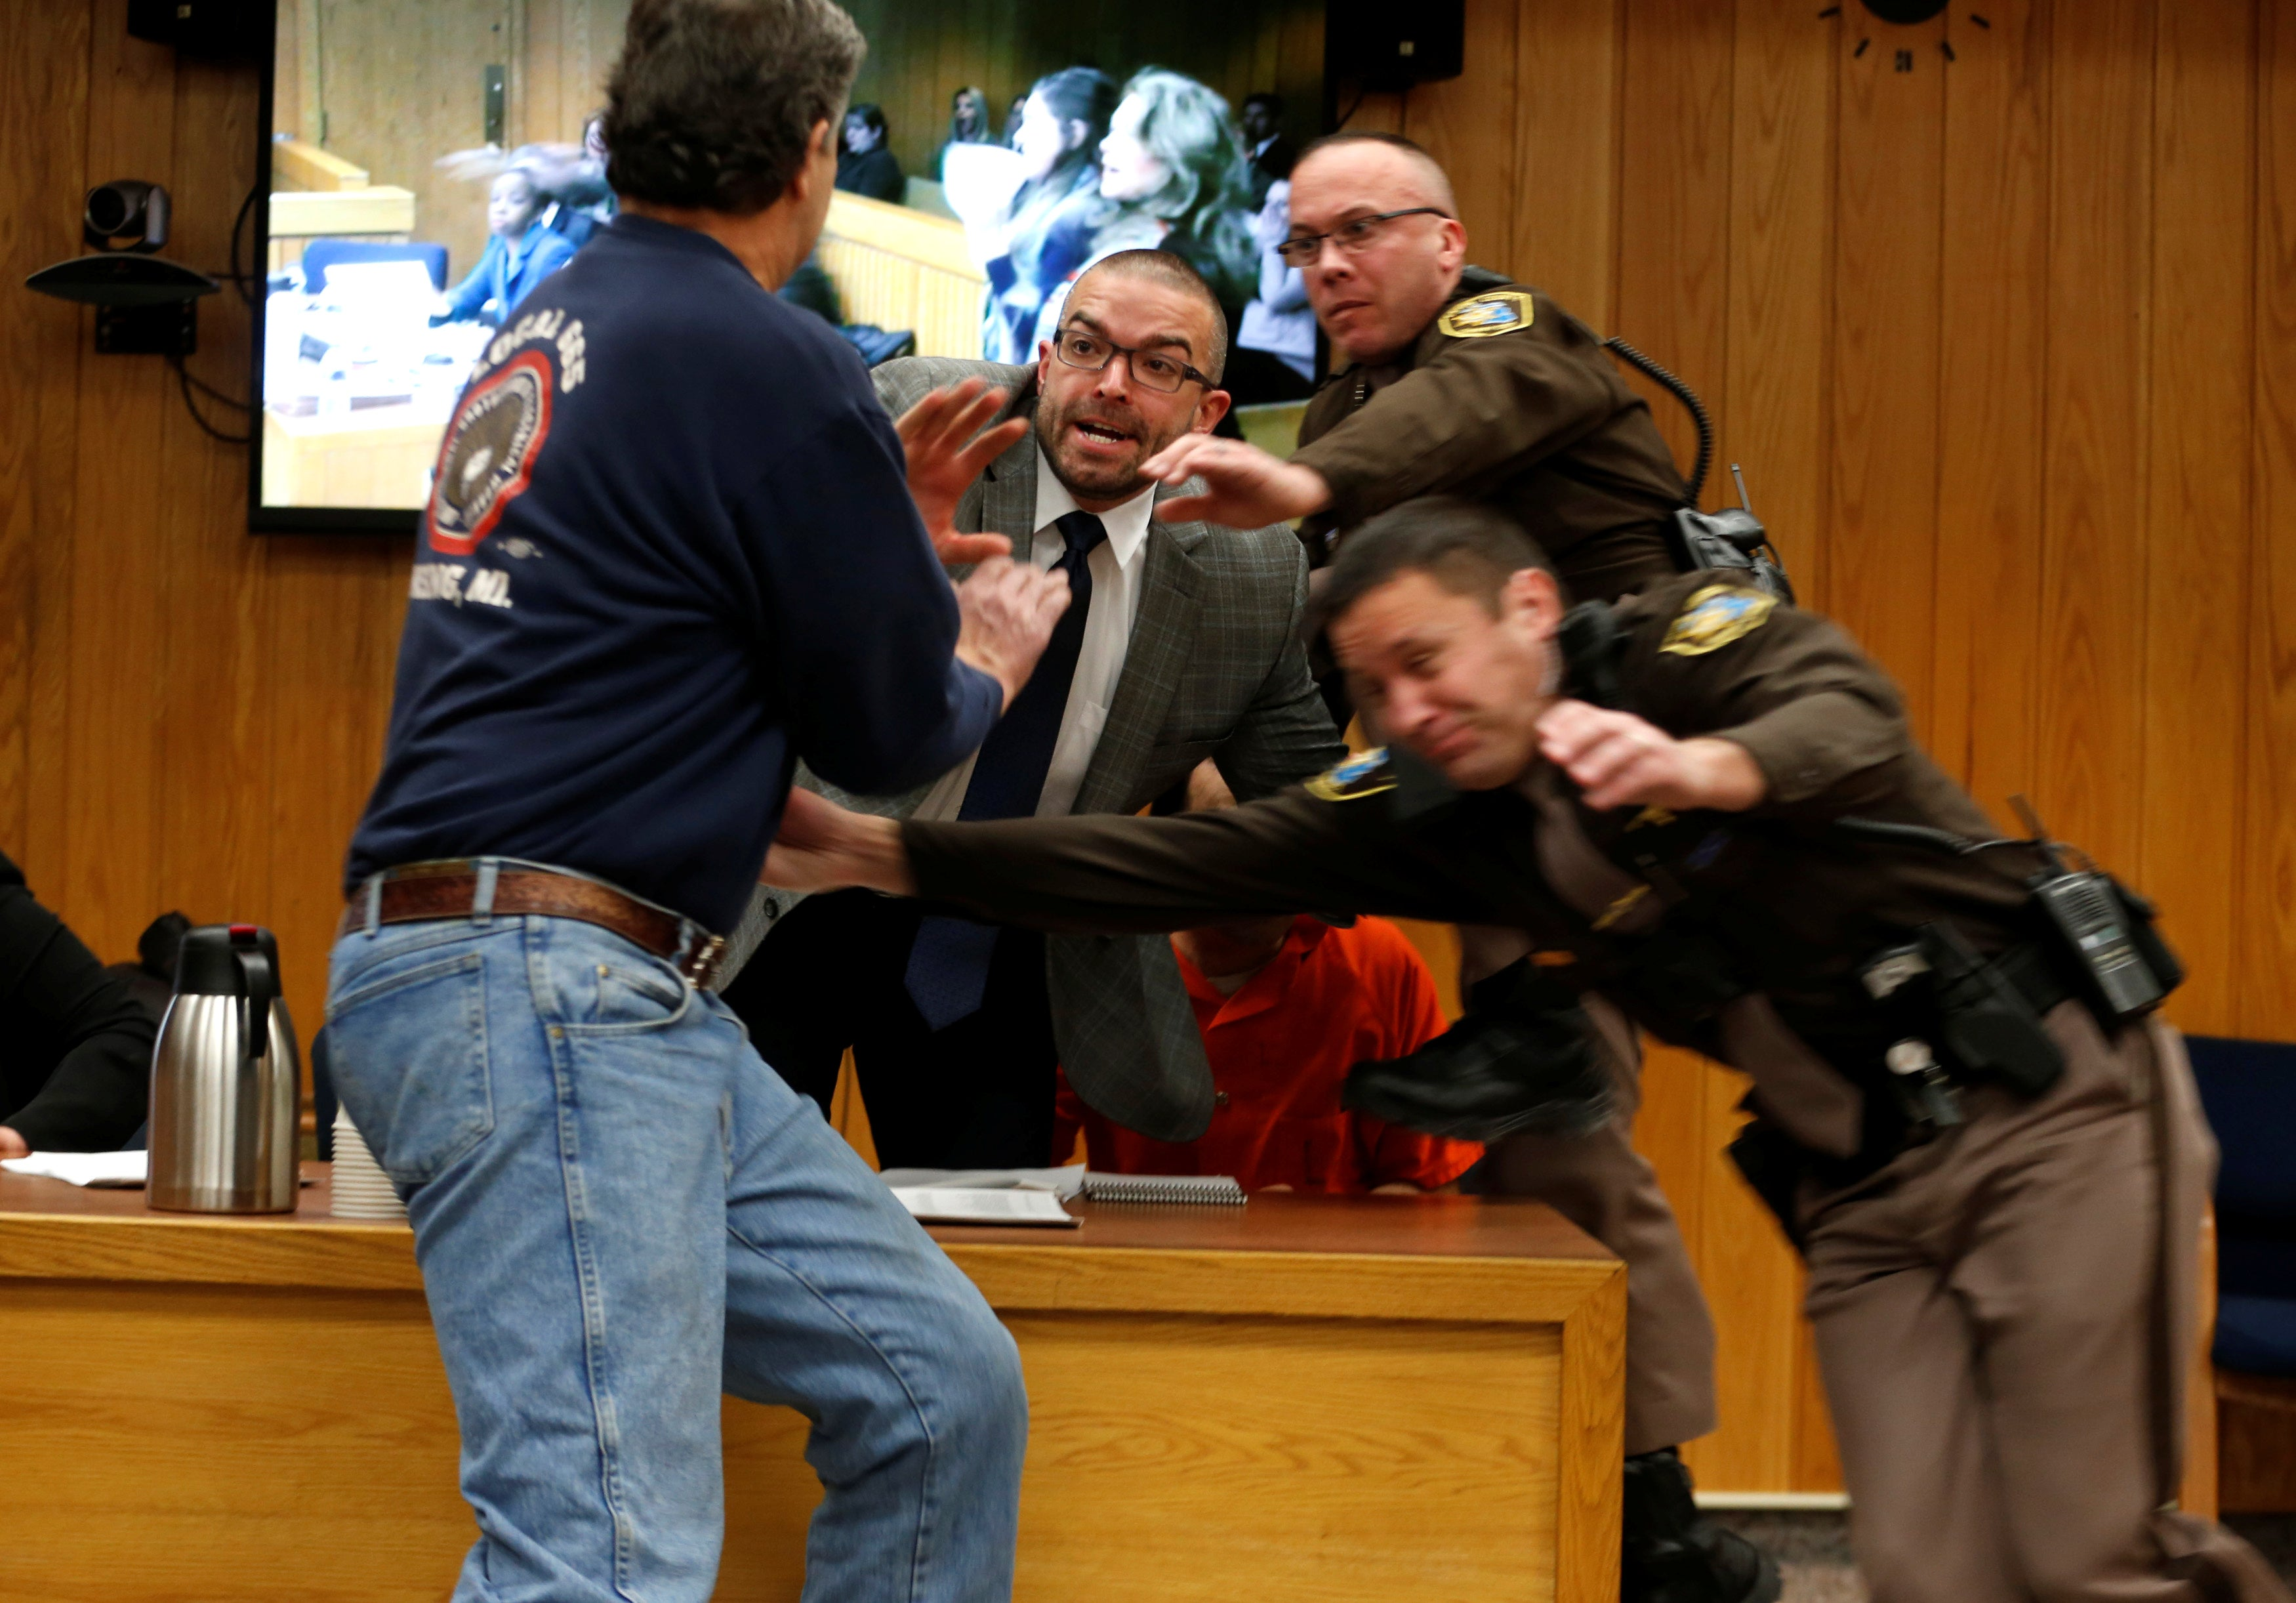 Randall Margraves (L) lunges at Larry Nassar (wearing orange), a former team USA Gymnastics doctor who pleaded guilty in November 2017 to sexual assault charges, during victim statements of his sentencing in the Eaton County Circuit Court in Charlotte, Michigan on February 2, 2018.